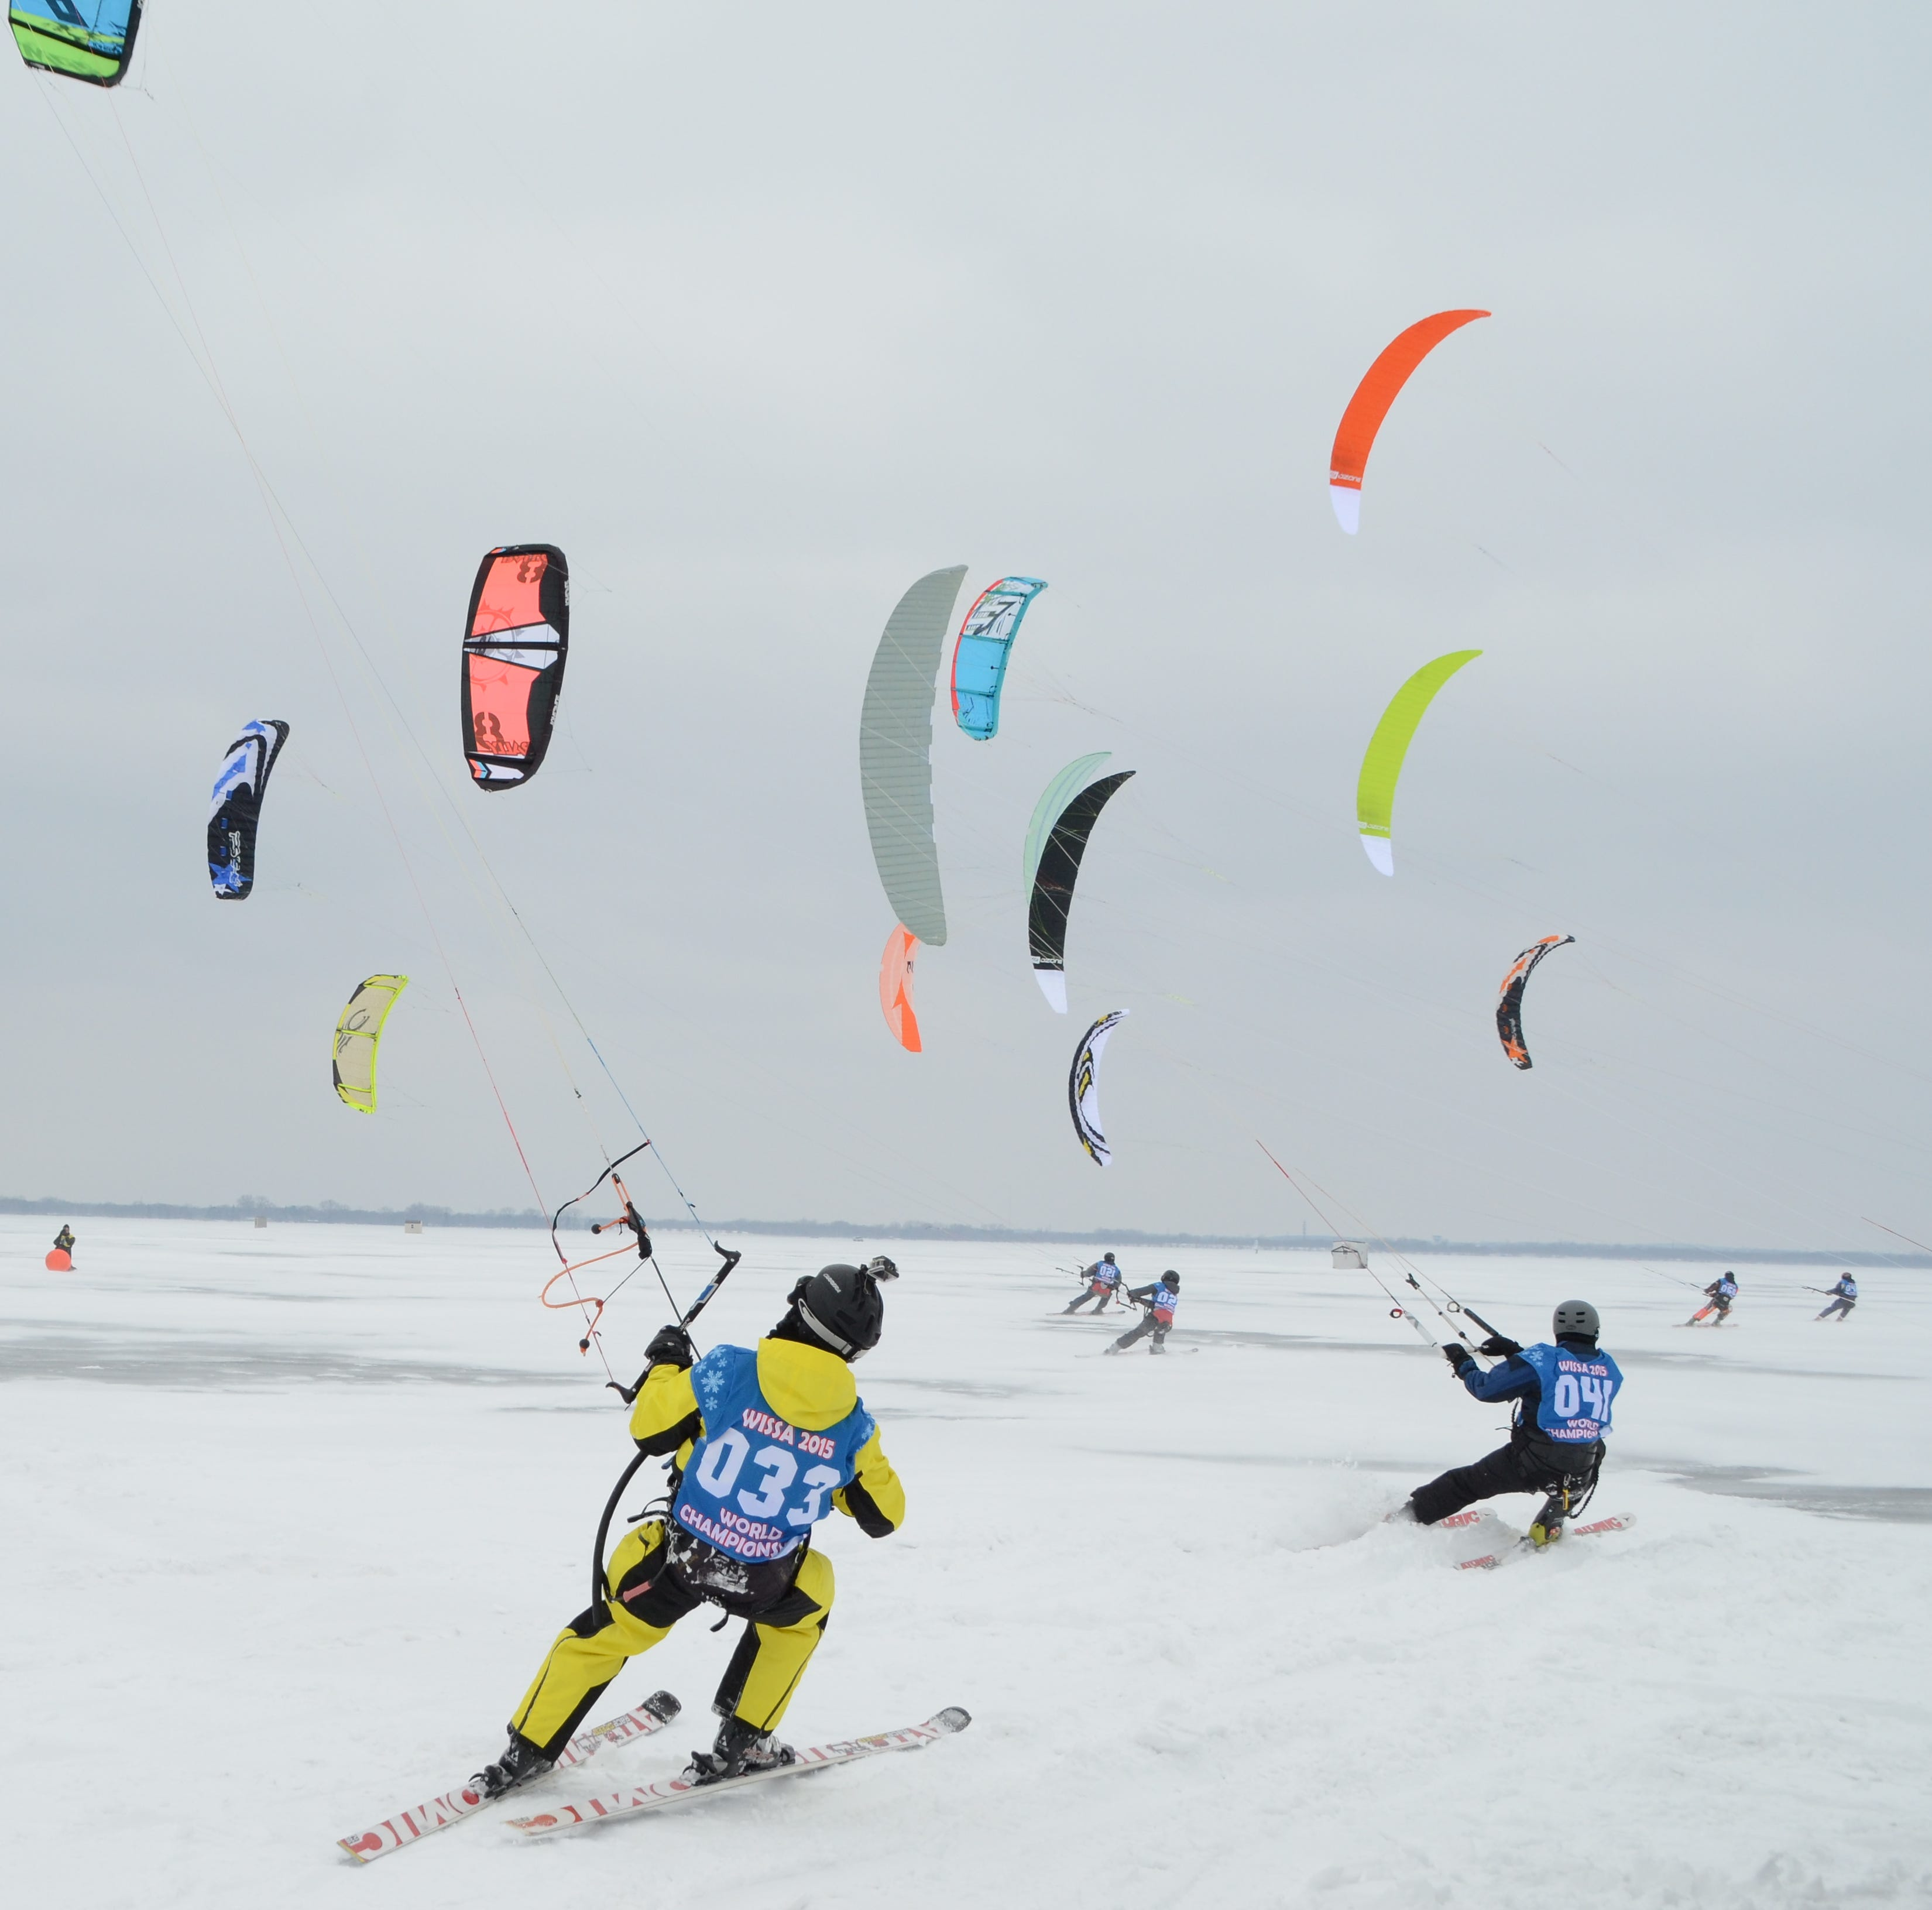 Revisiting my bucket list led to kiteboarding | Bethany Lerch column